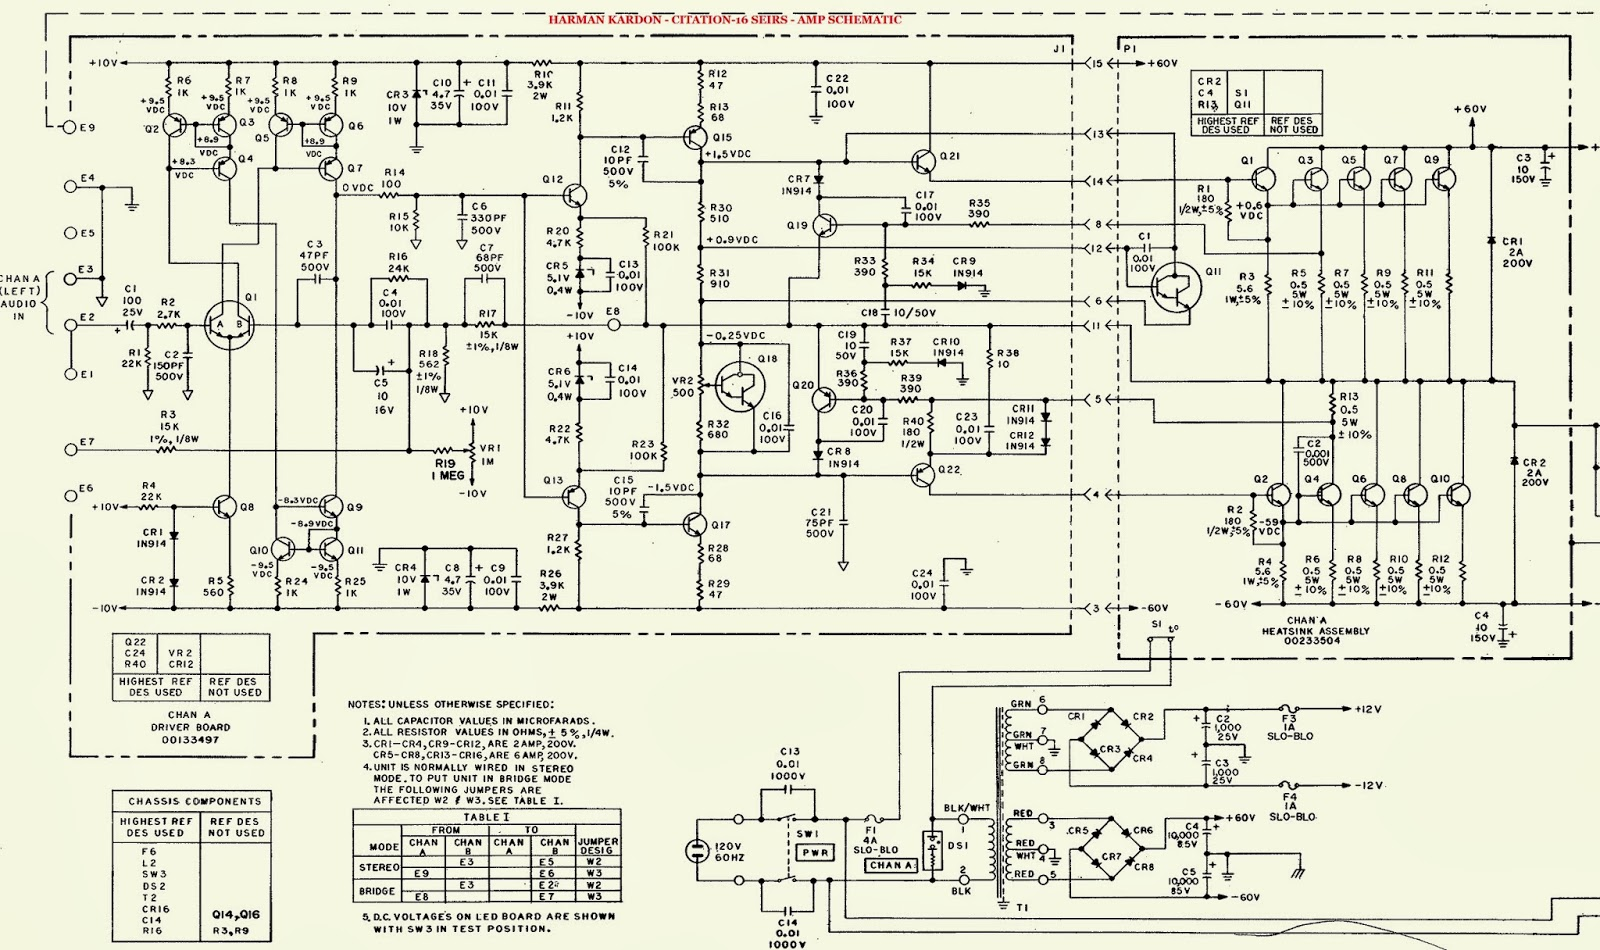 hight resolution of mini cooper harman kardon amplifier wiring diagramamp wiring schematic 21